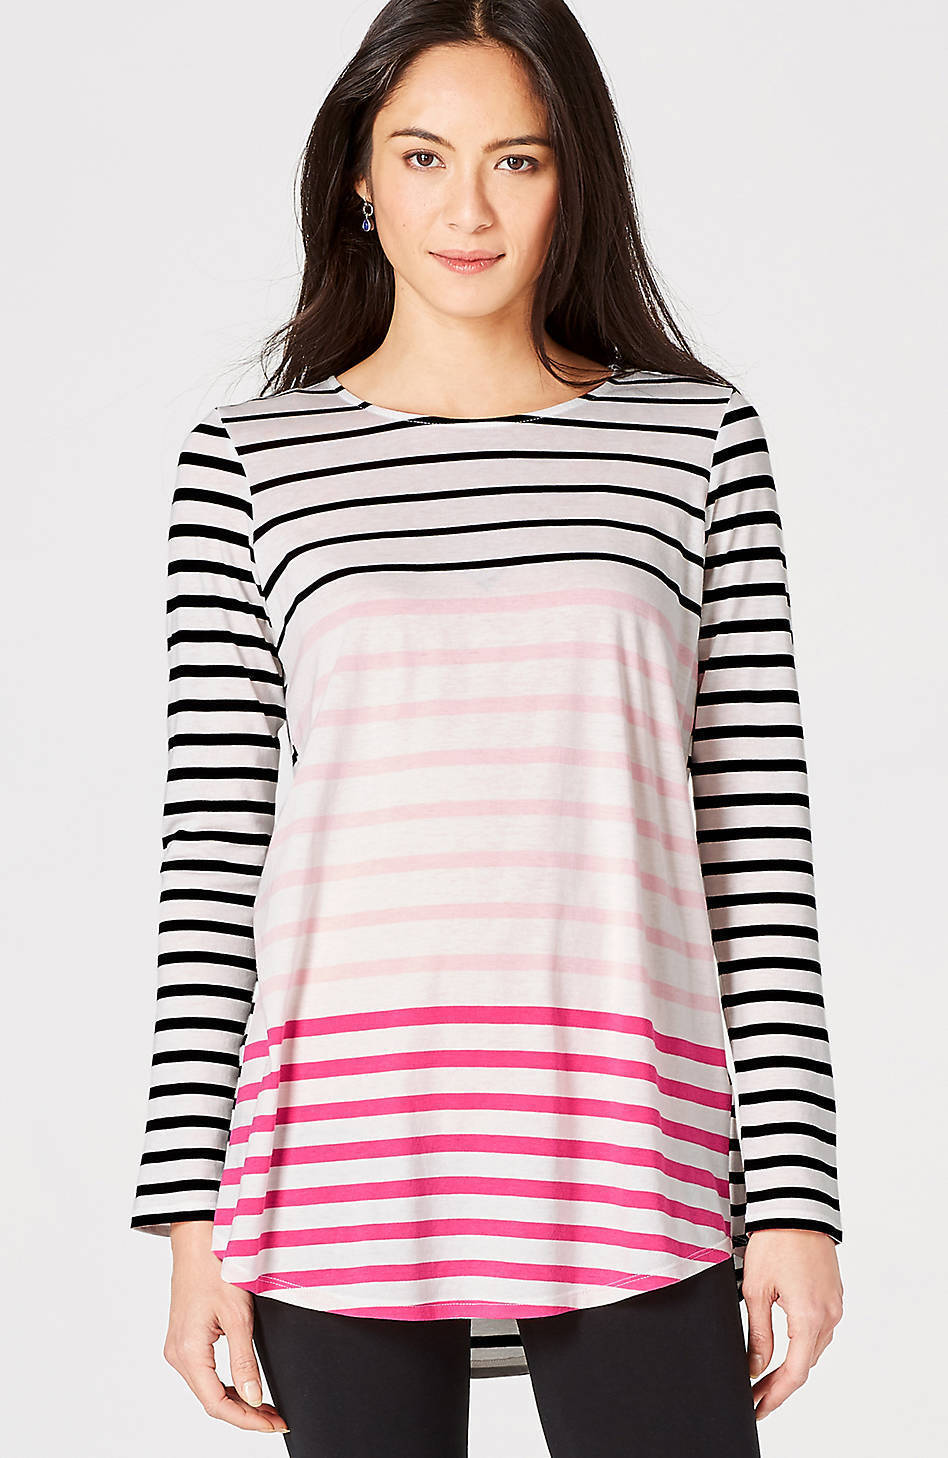 J. Jill -3X(Plus)  - Gorgeous Hot Rosa Multi Mixed-Stripes Knit Tunic - NWT